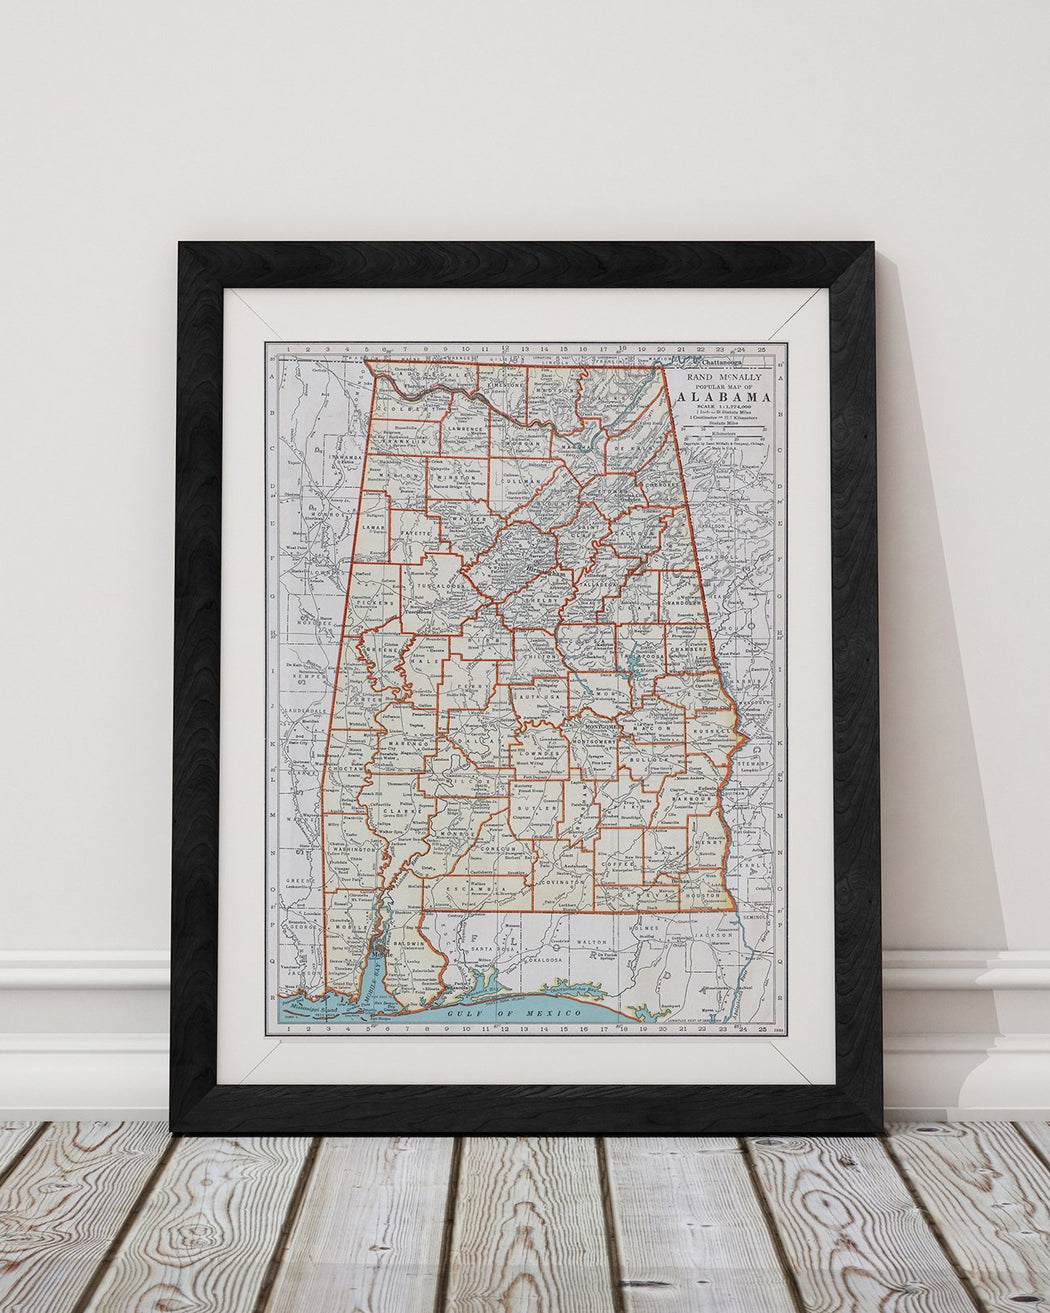 Alabama cities